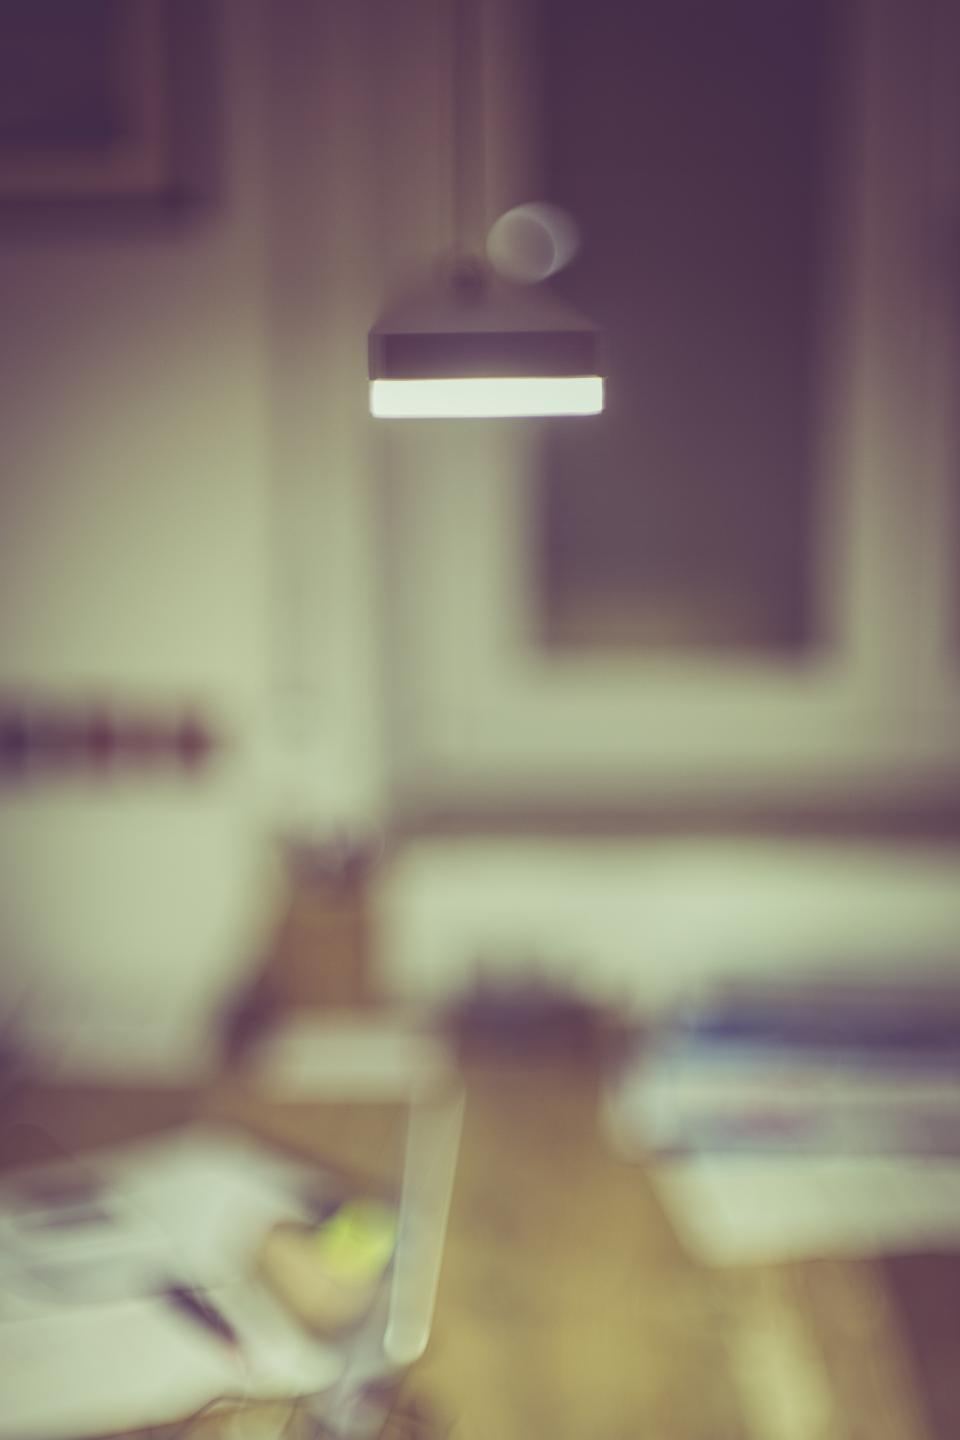 interior lamp abstract blur